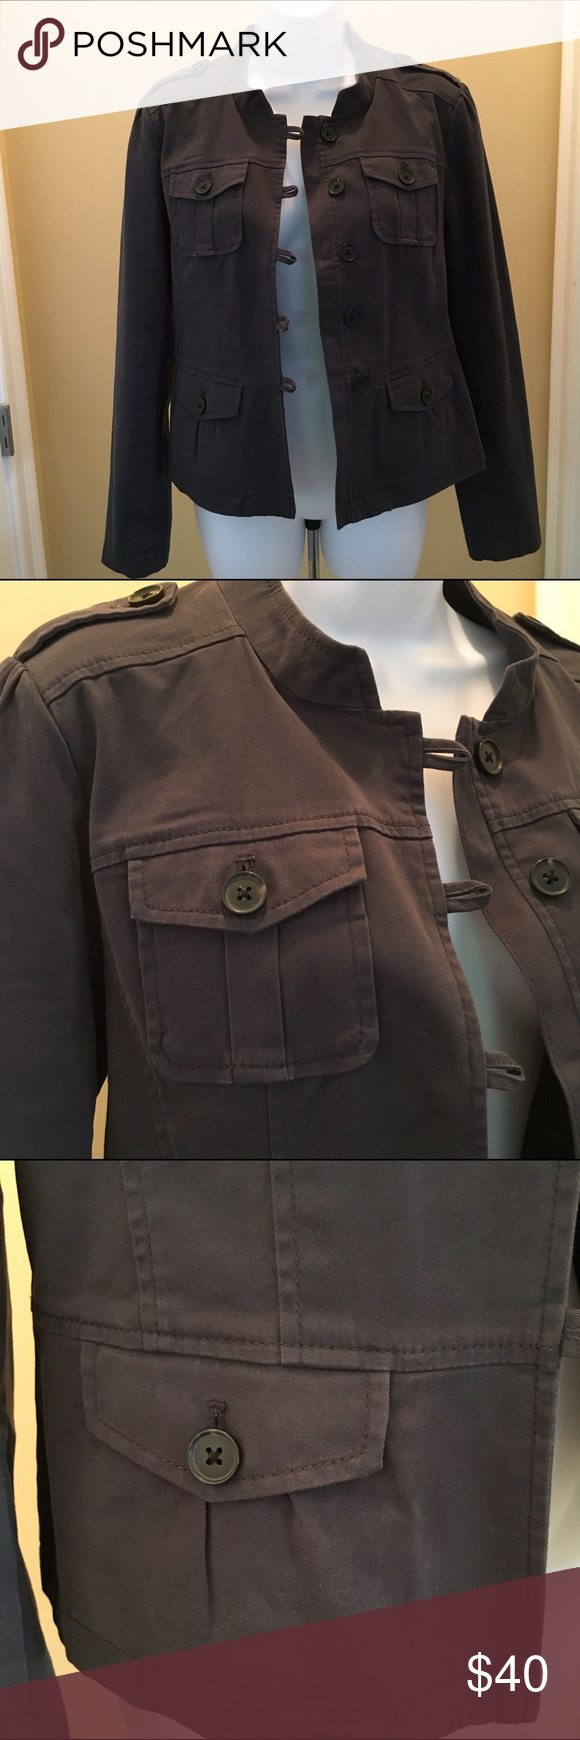 """NWOT Ann Taylor Loft muted blue jacket, size M Cut off the tags and never wore it! Almost a military-style jacket but with feminine touches. Pretty gathering at shoulder seams and at the back waist area. Button front has loop closures.  Unlined. 98% cotton/2% spandex to allow for """"give"""" when moving. Has a nice soft feel. Size M from Ann Taylor Loft. Ann Taylor Loft Jackets & Coats Blazers"""